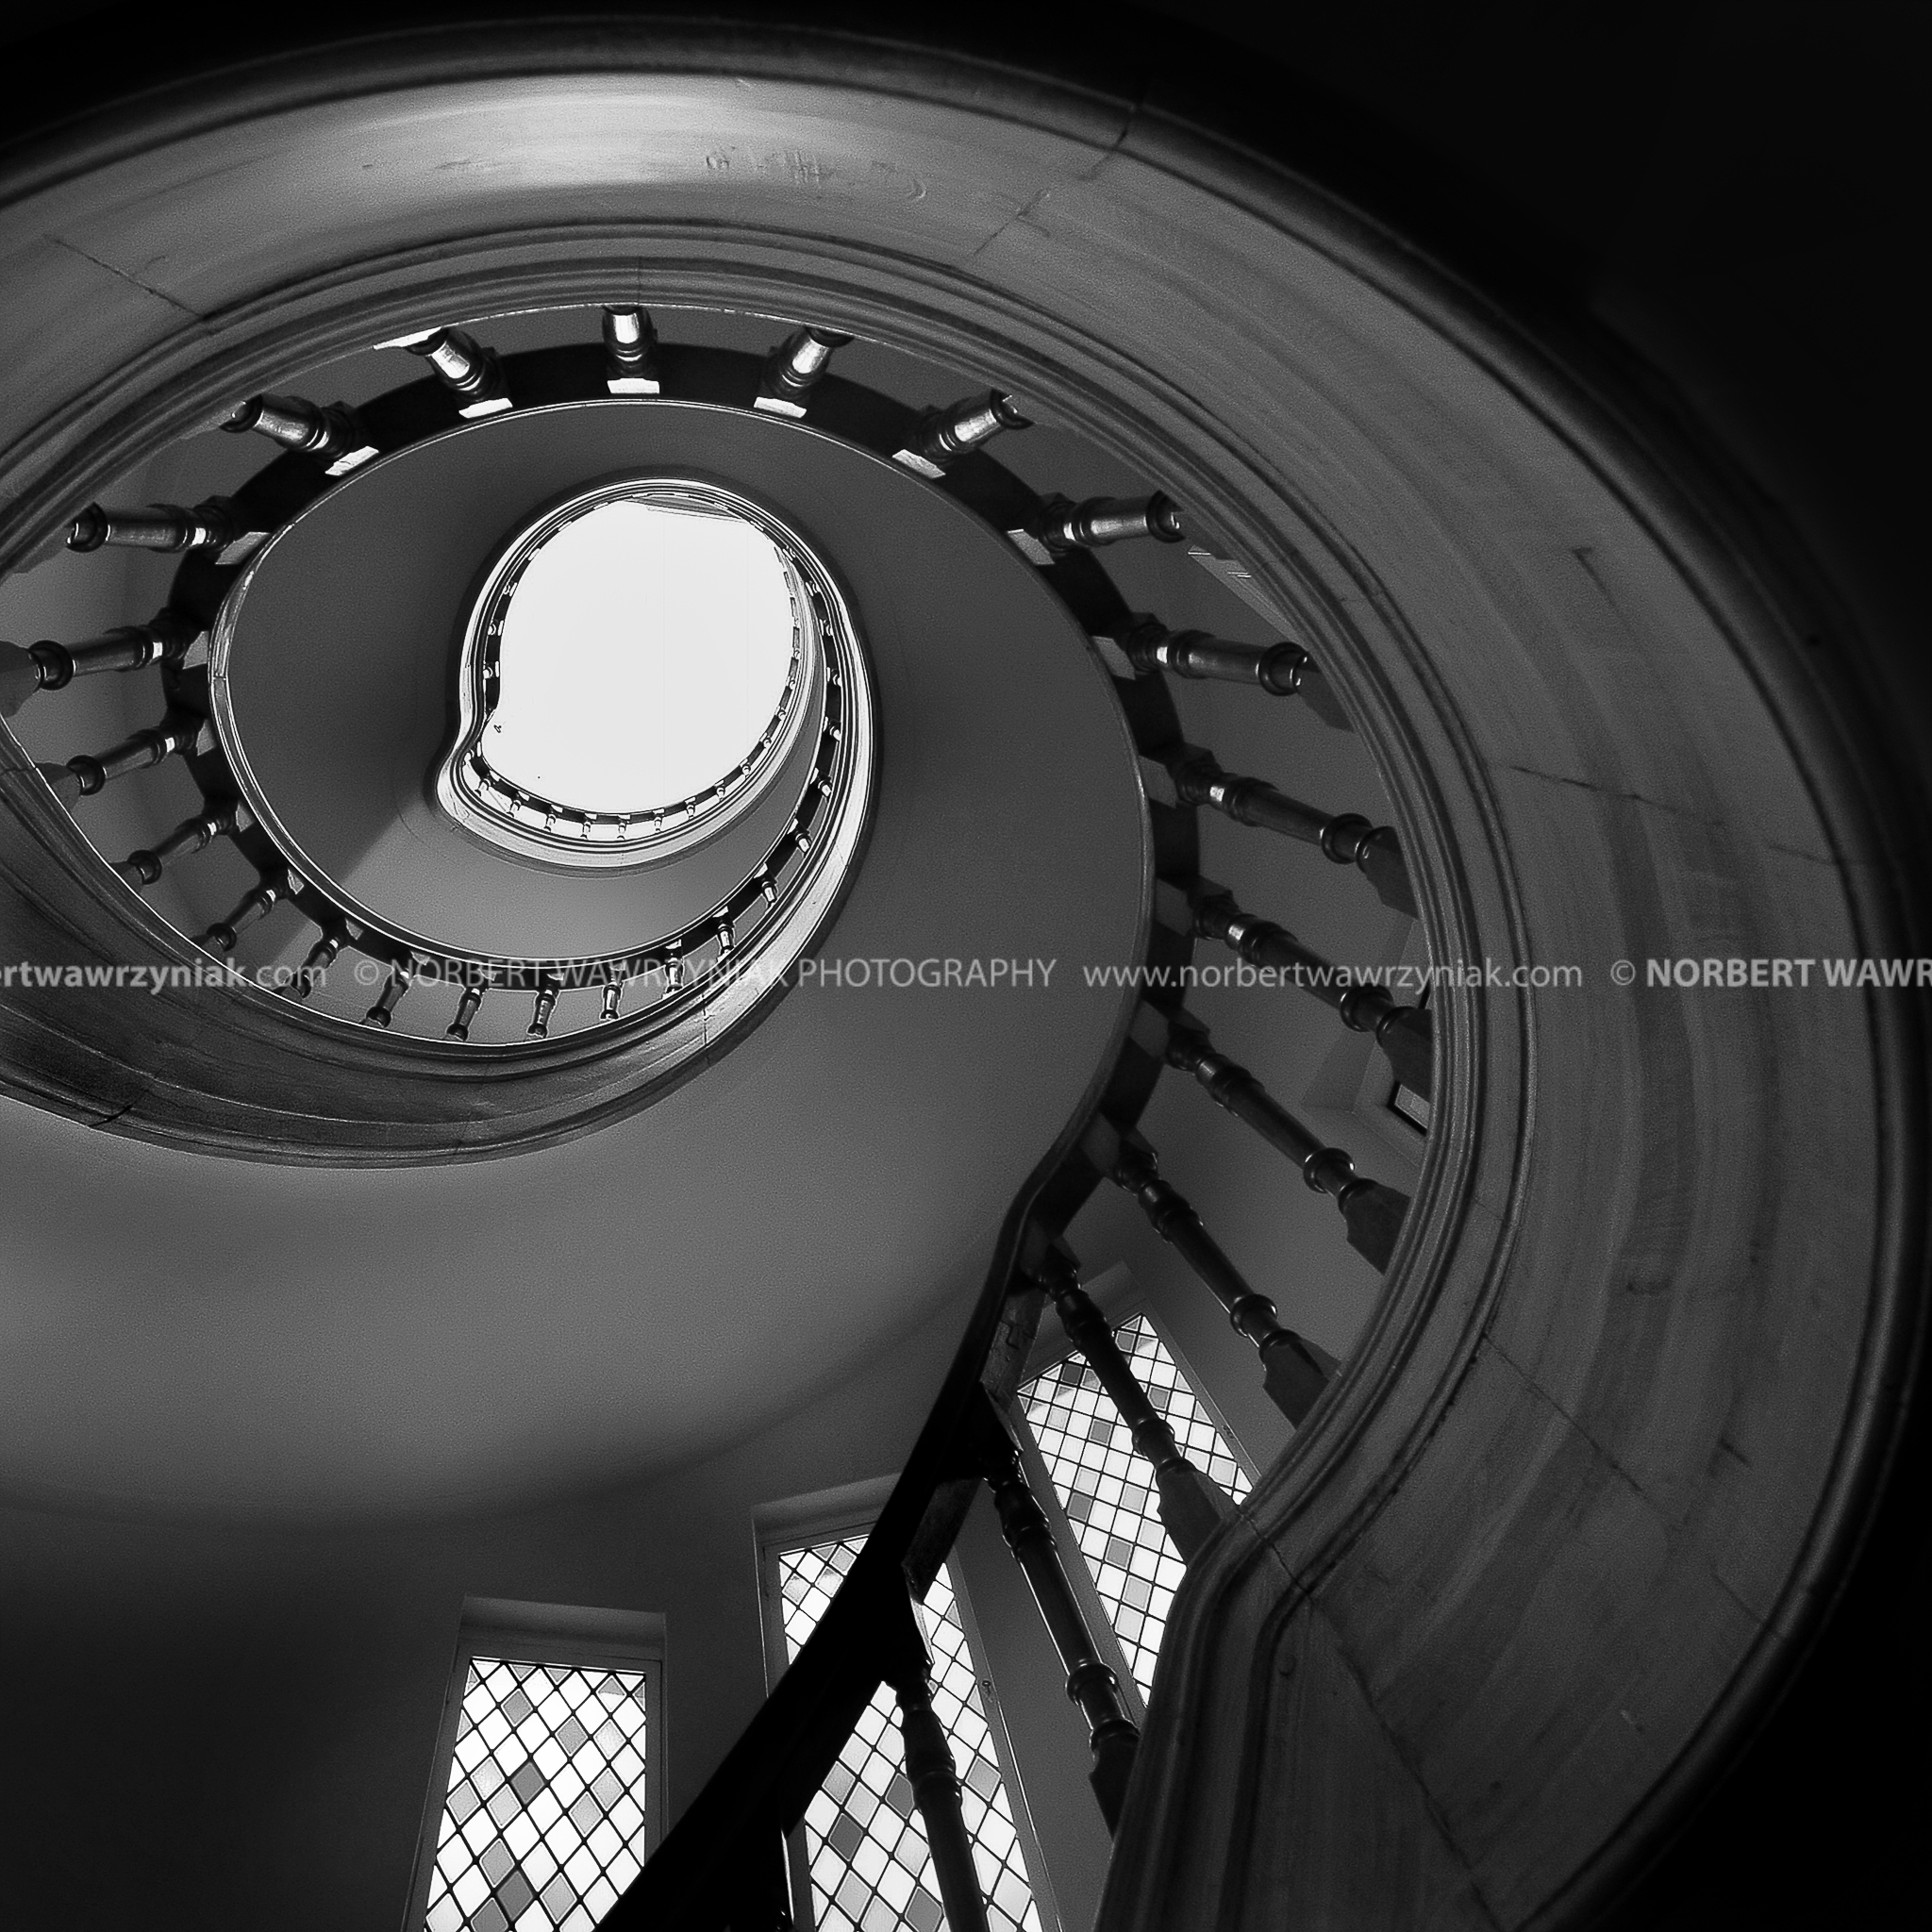 Stairs X – France, Paris